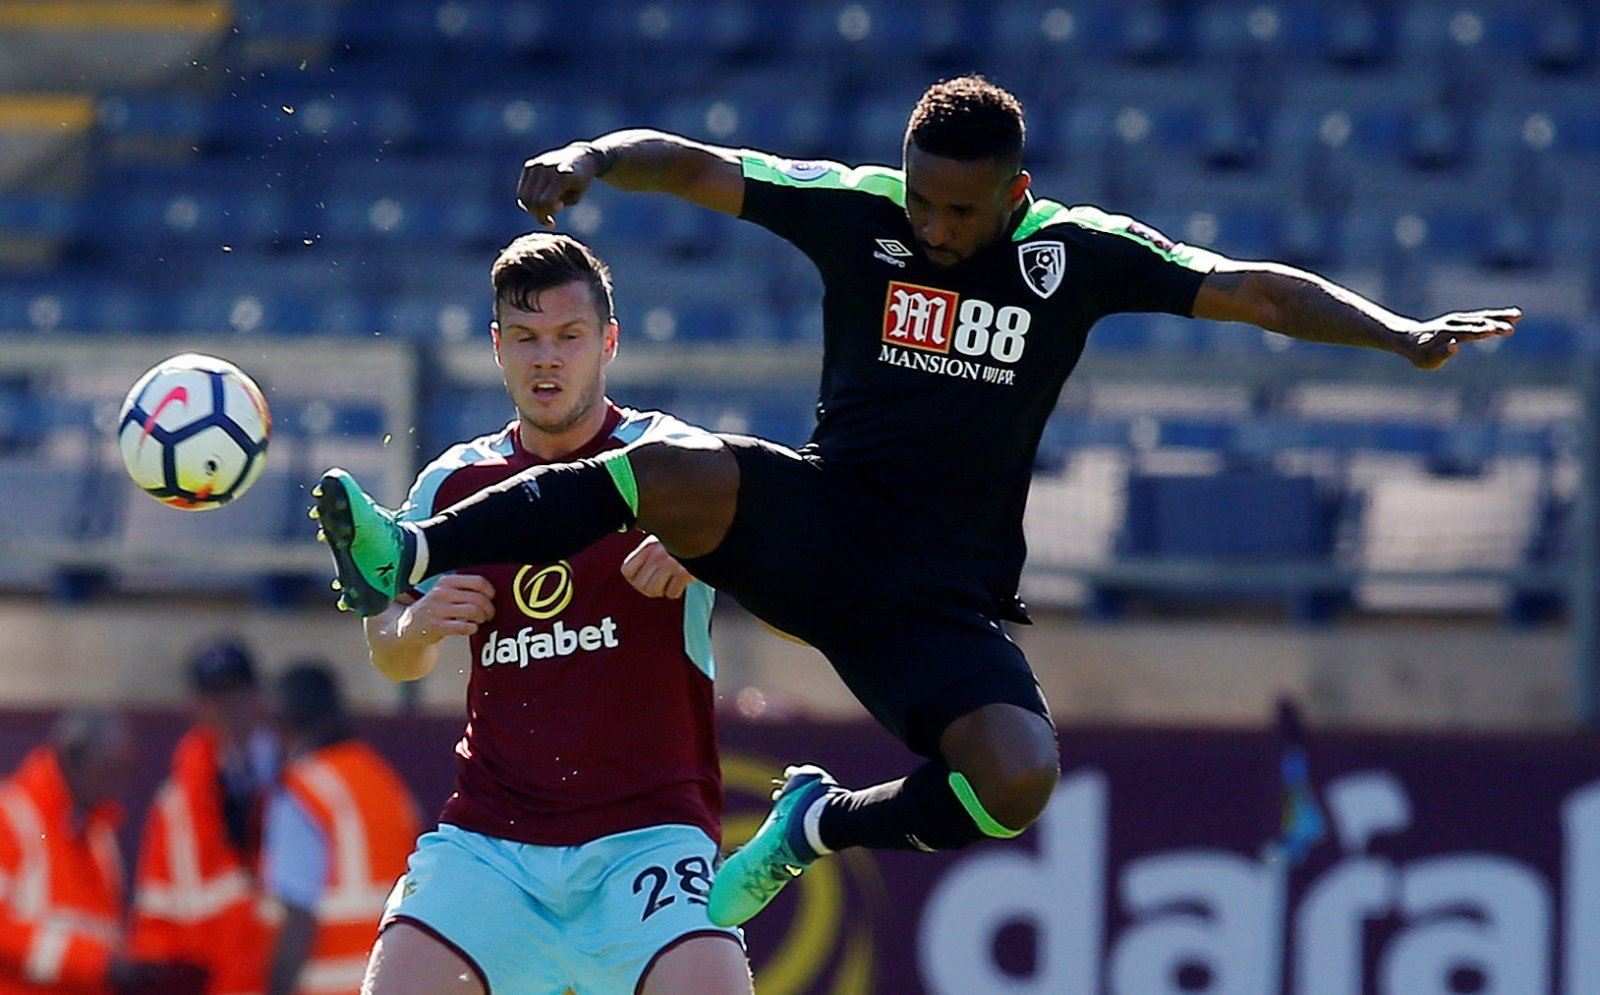 West Ham fans are so wrong: Addition of Jermain Defoe could be a masterstroke